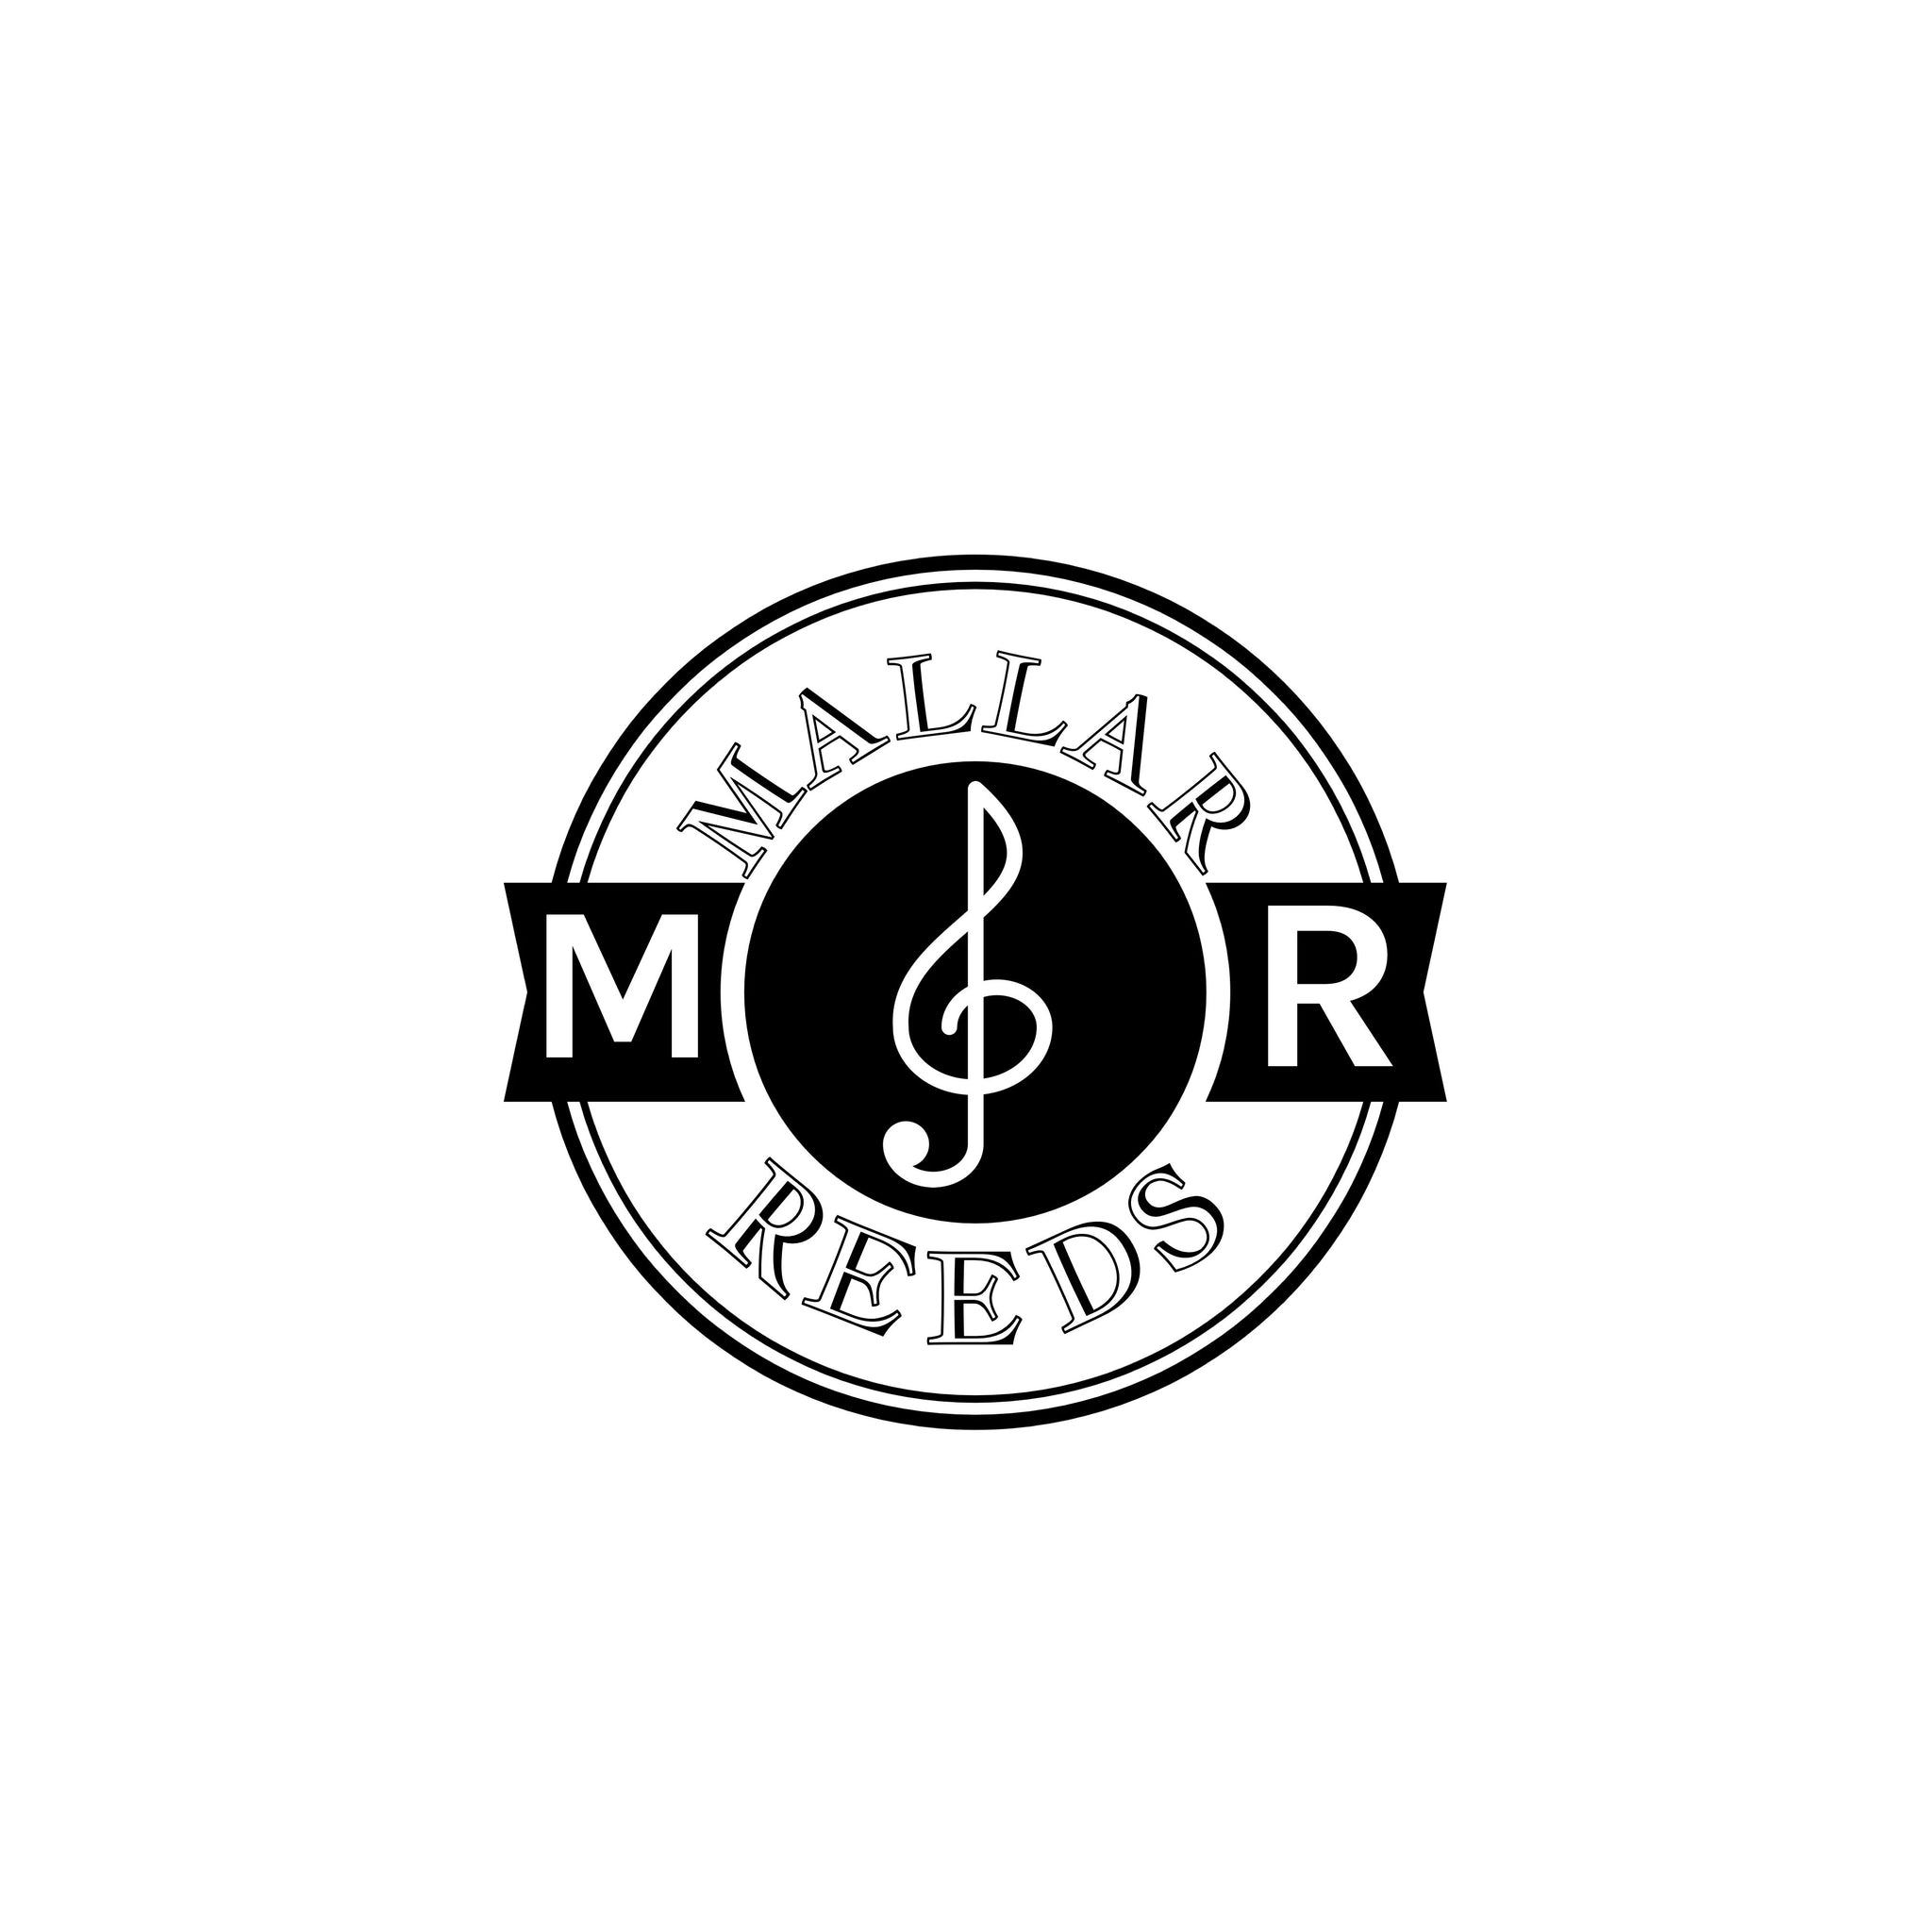 Mallar Reeds logo. Mallar reeds specializes in high-quality student bassoon and student oboe reeds.